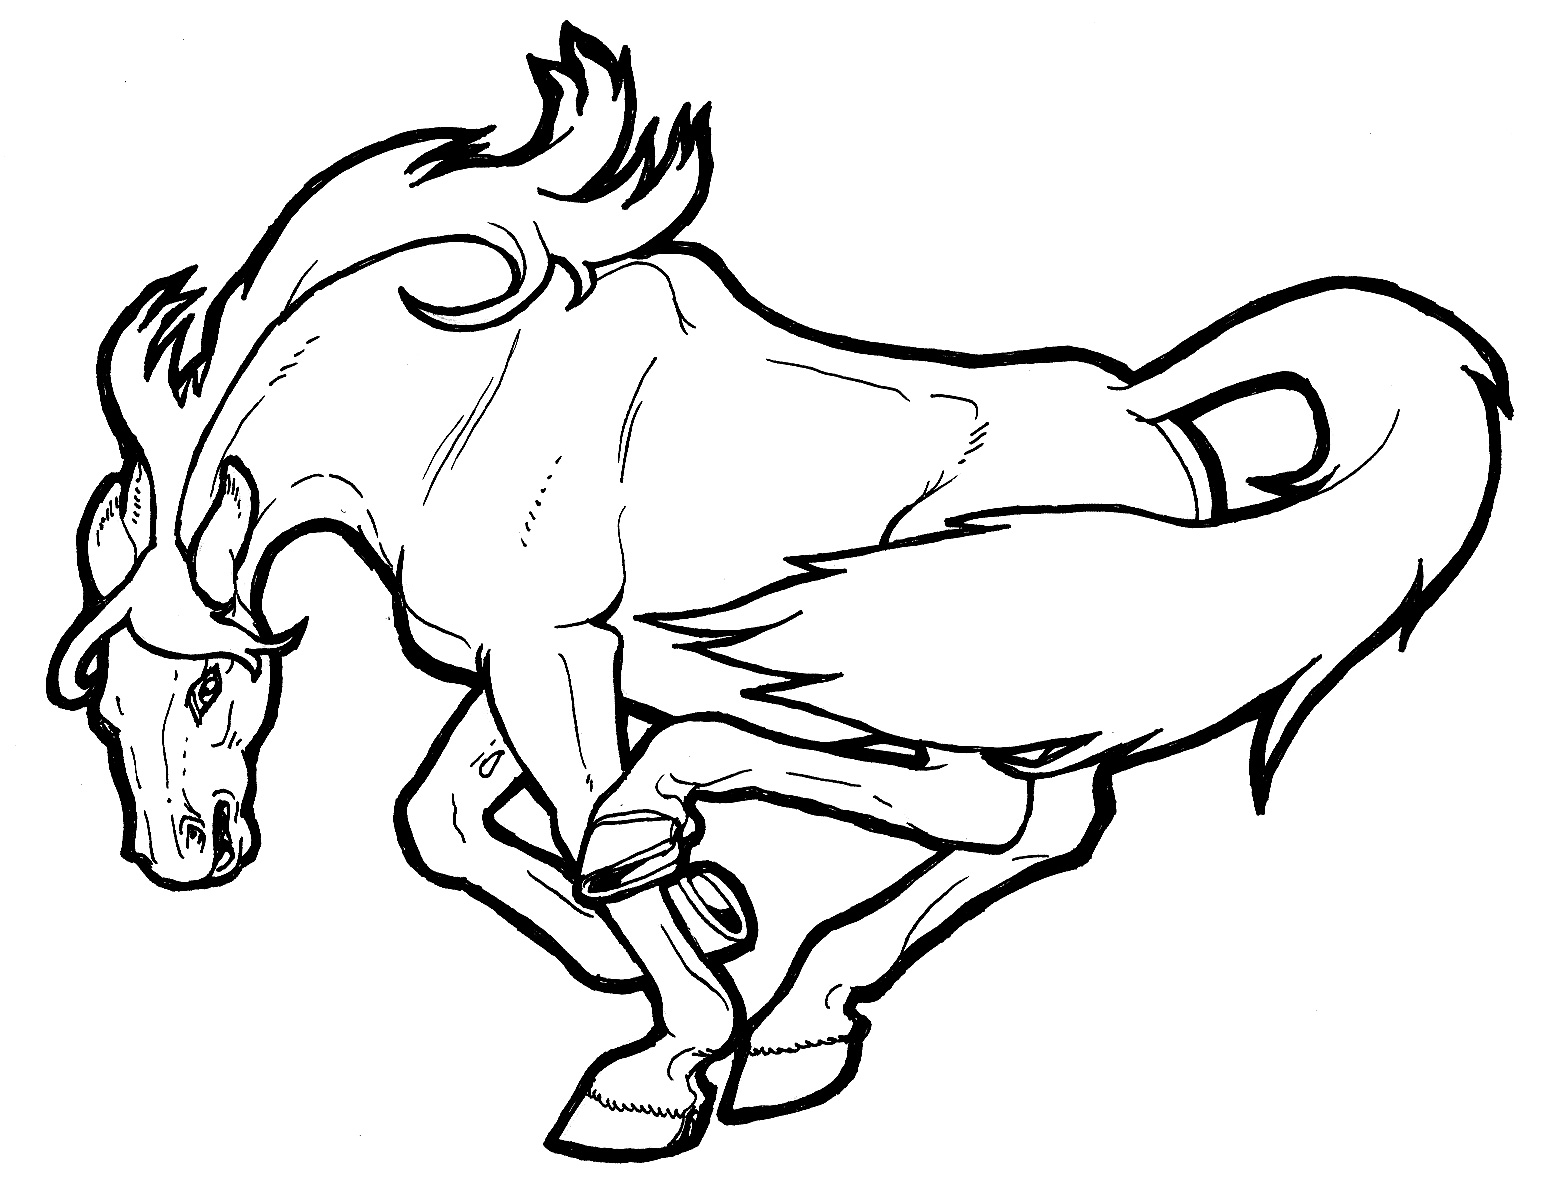 Coloring Book and Pages Tremendous Horse Coloring Page to Print Of Horse Detailed Coloring Pages Gallery